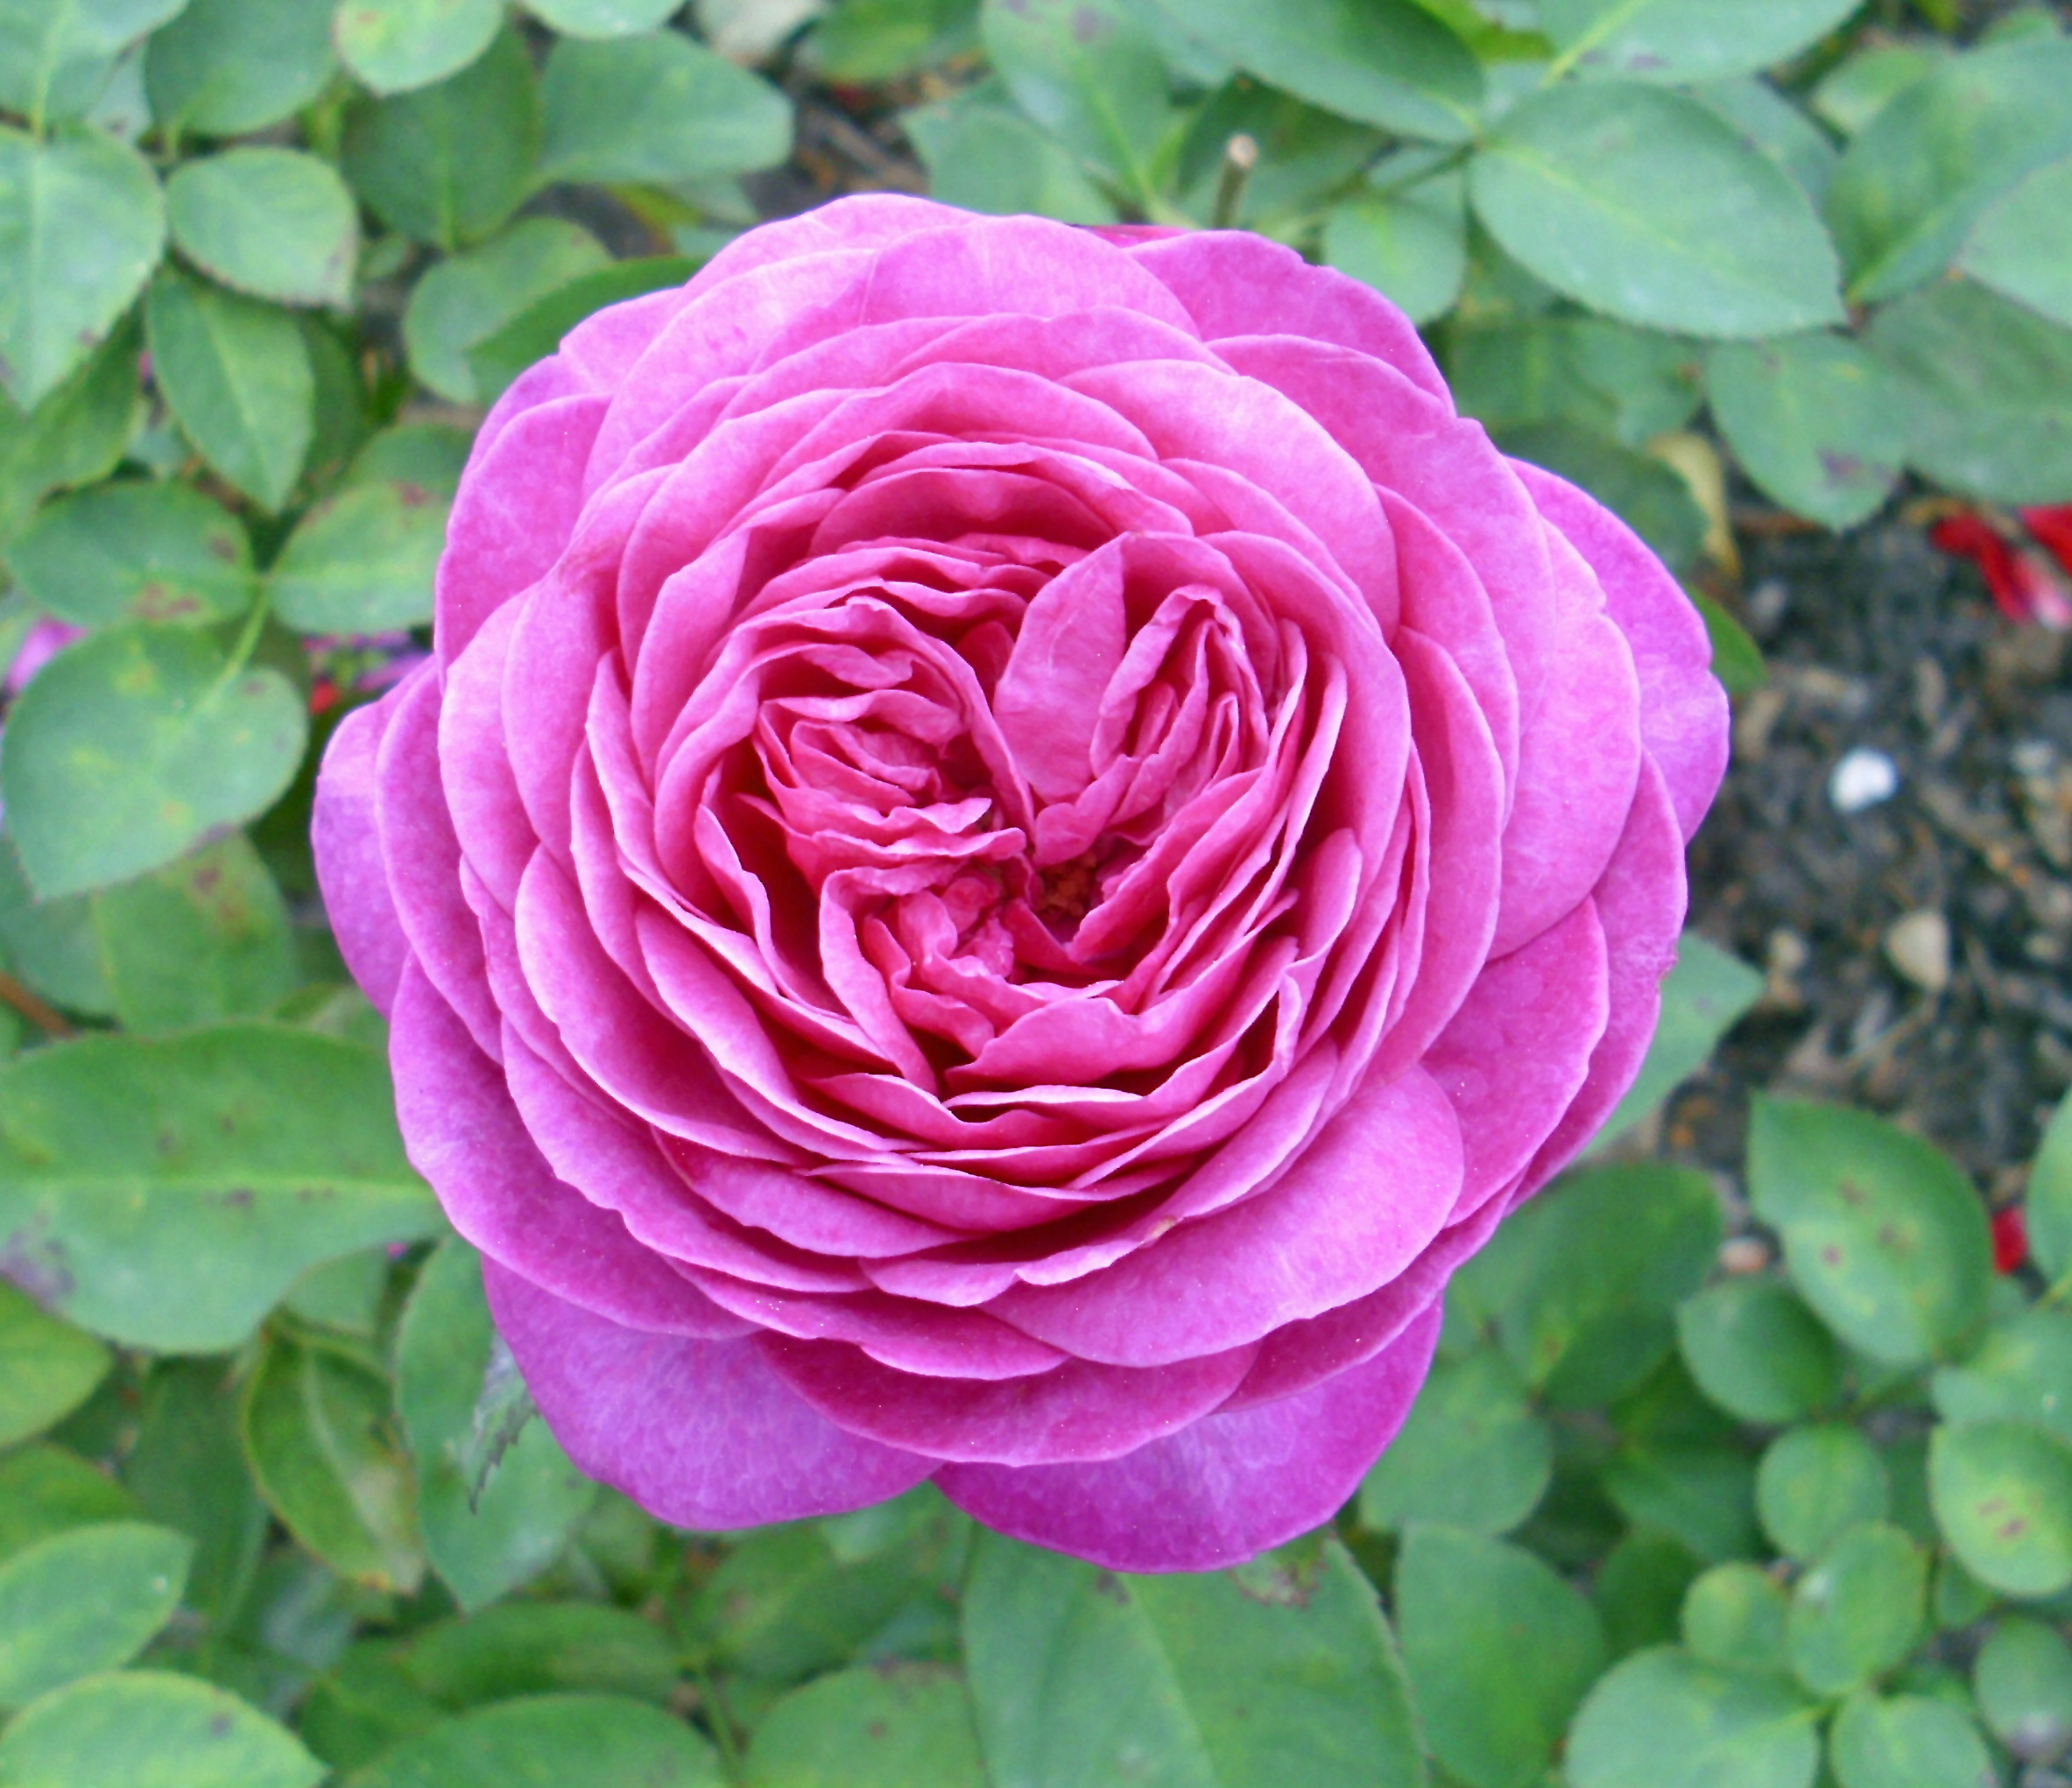 file heidi klum rose tantau 2006 jpg wikimedia commons